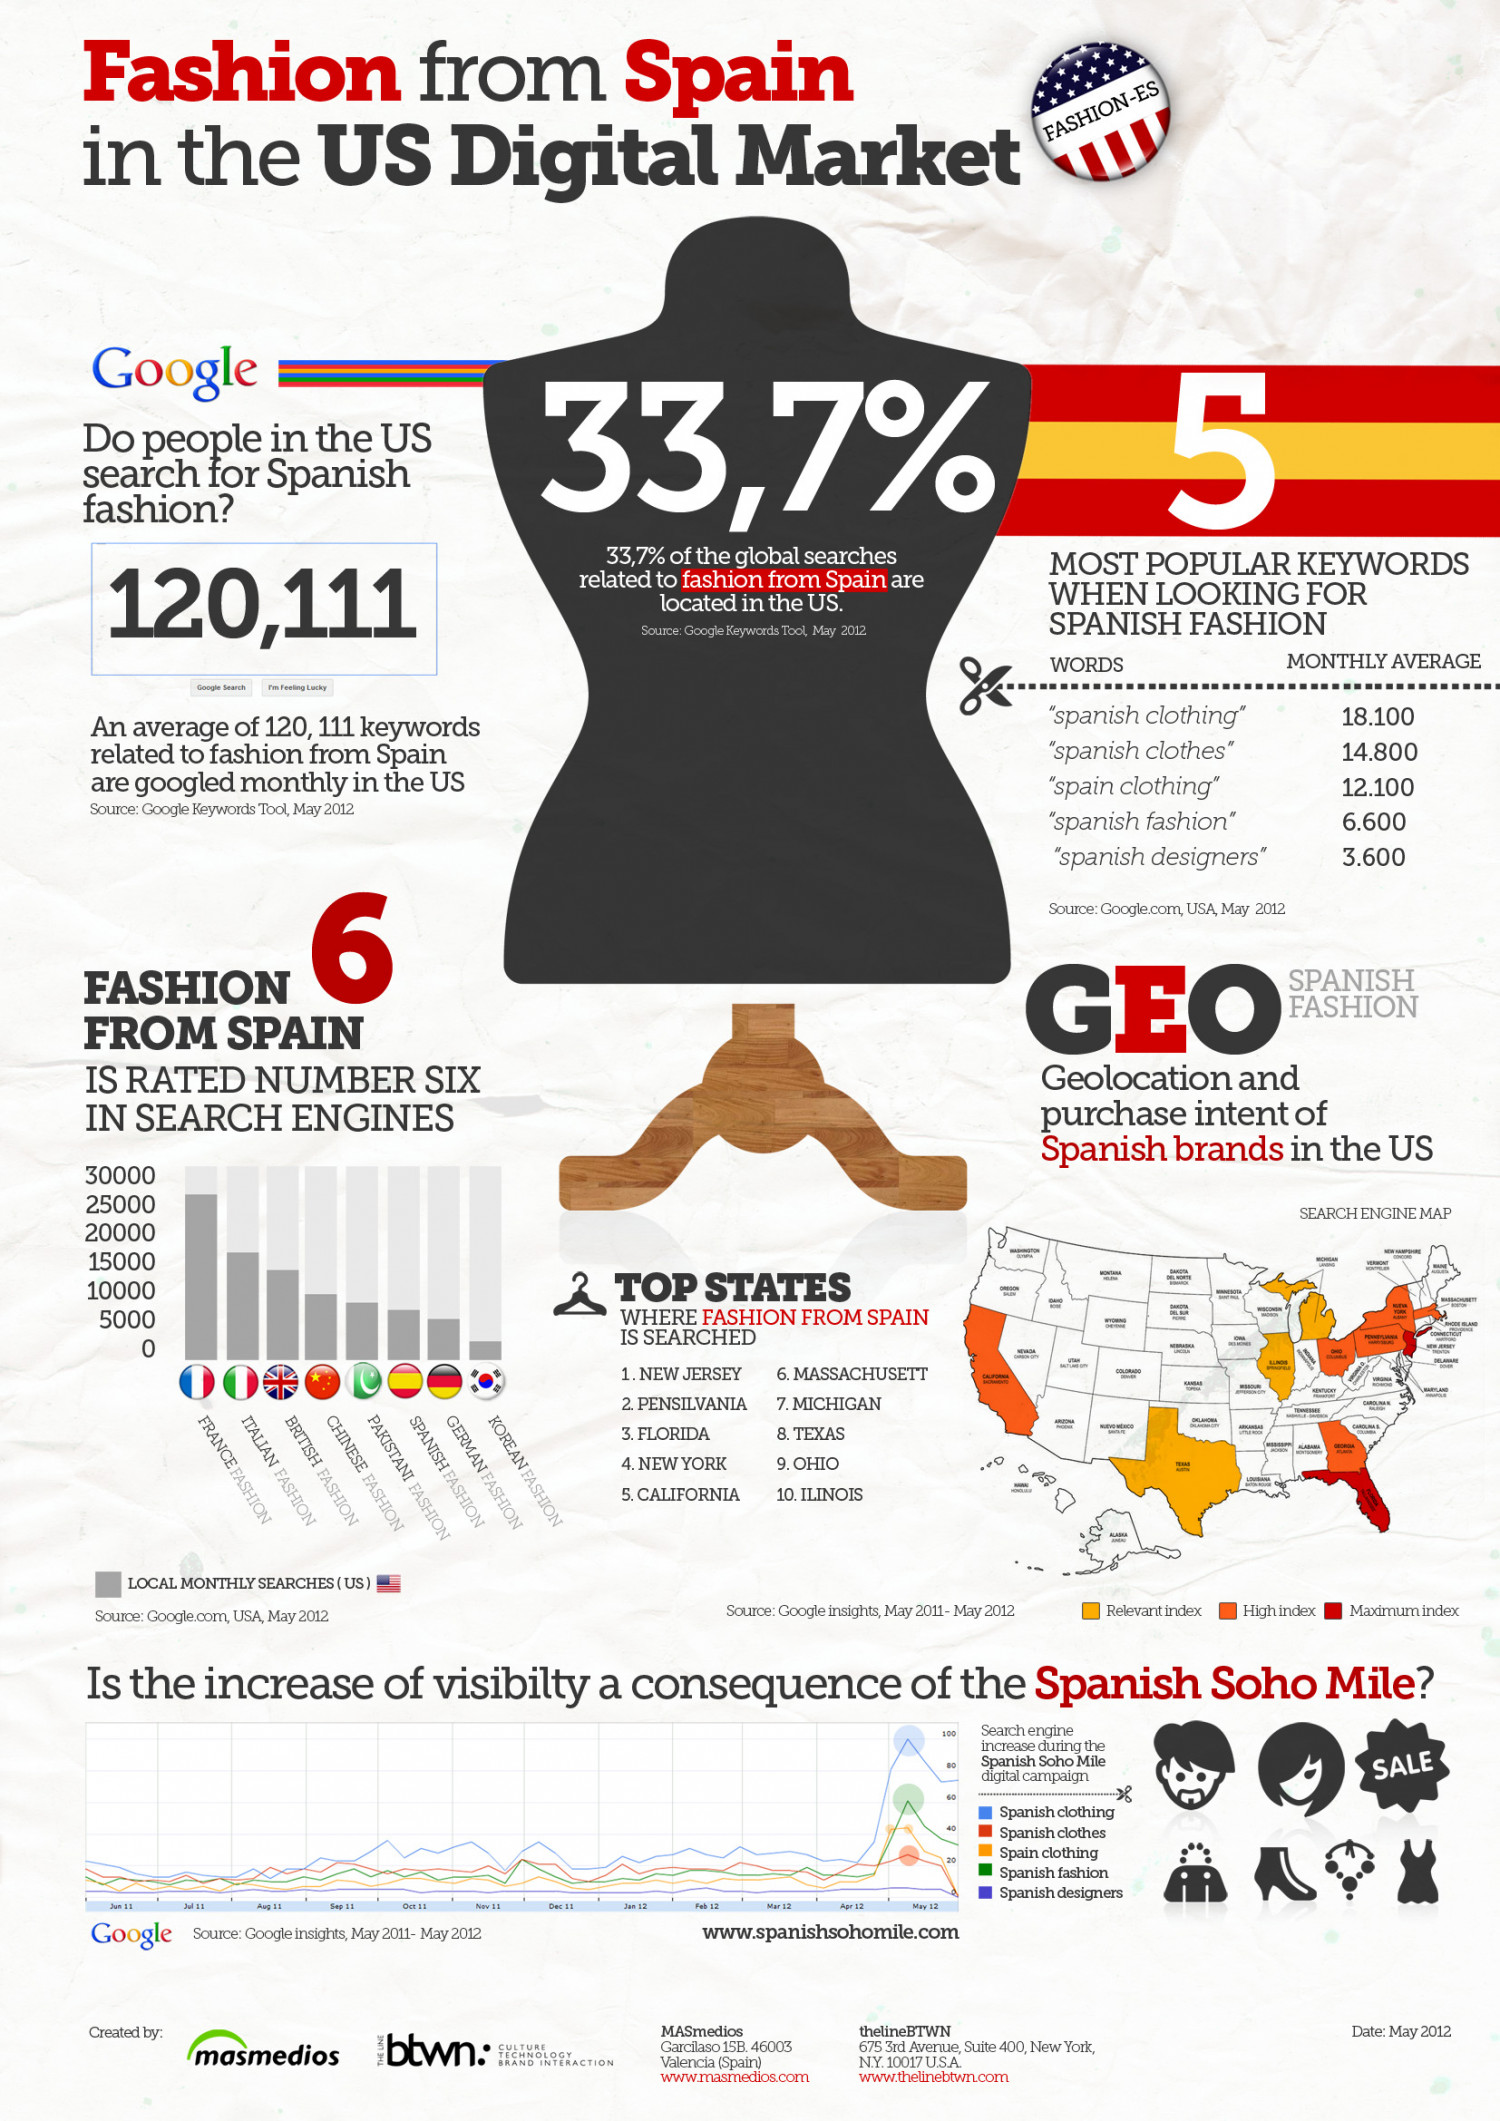 Fashion from Spain in the US Digital Market. Infographic